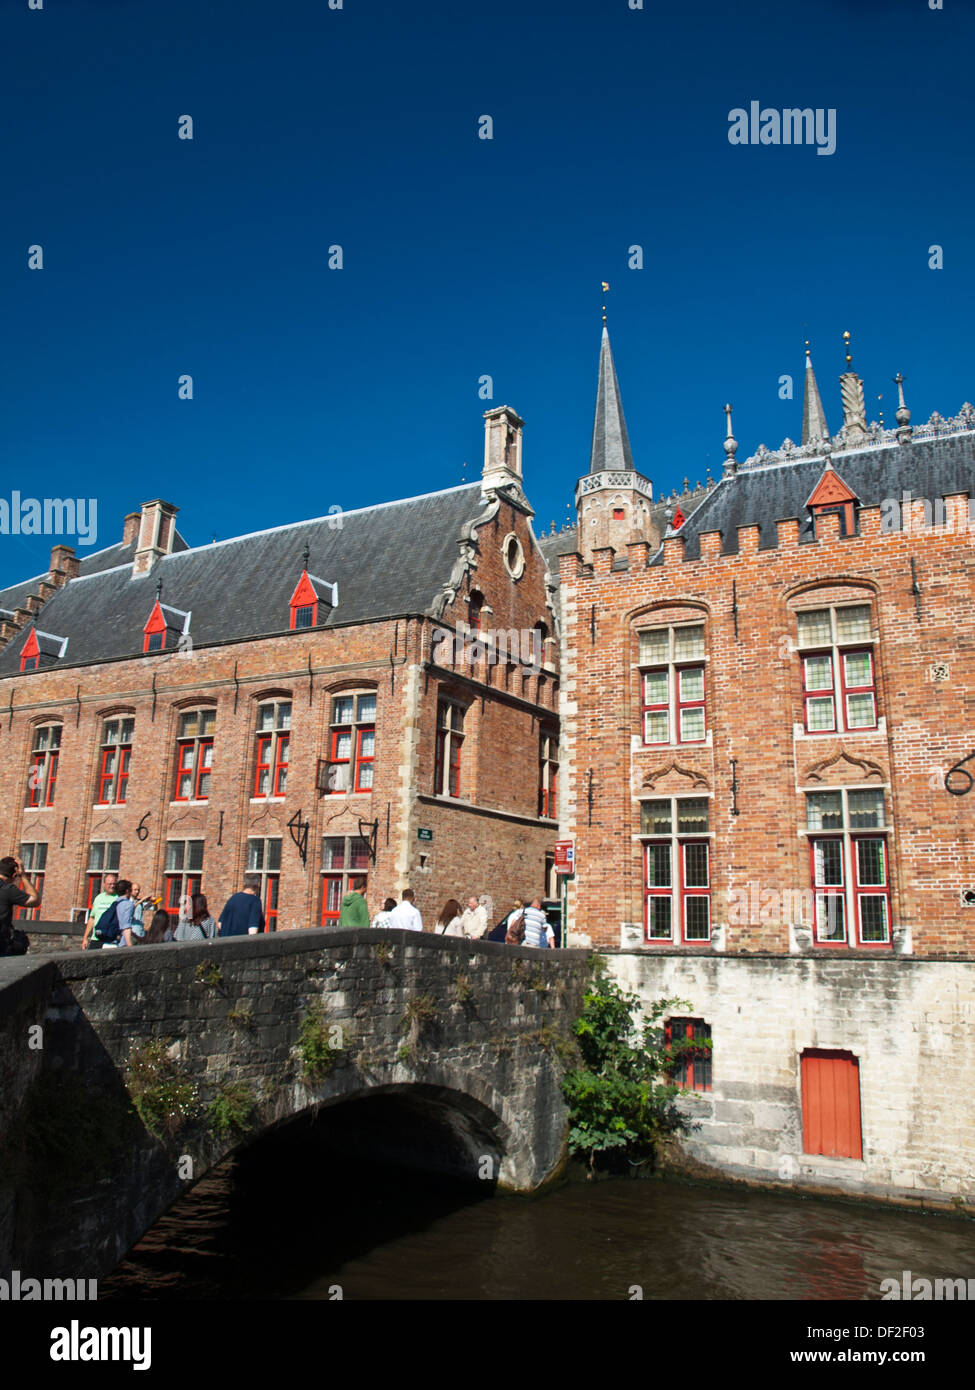 Bruges canal bridge and traditional guilded houses by Blinde Ezelstratt - Stock Image